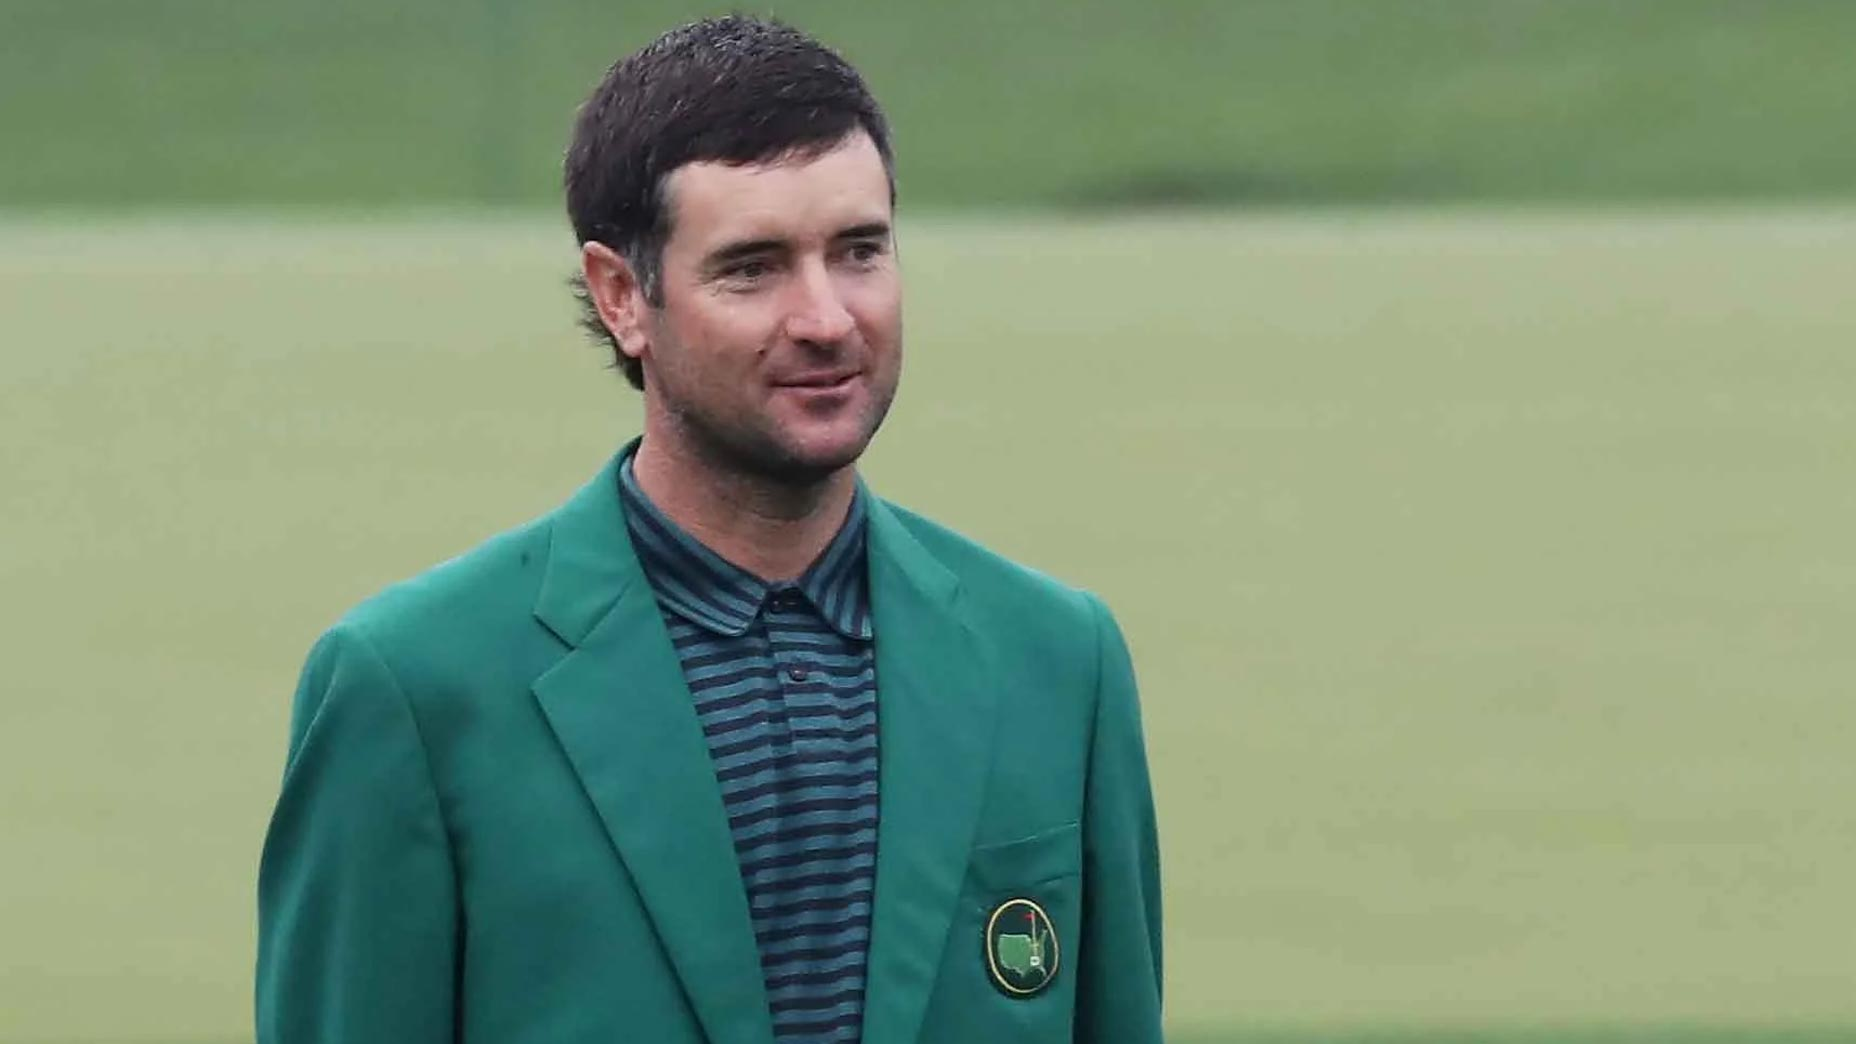 bubba watson in green jacket